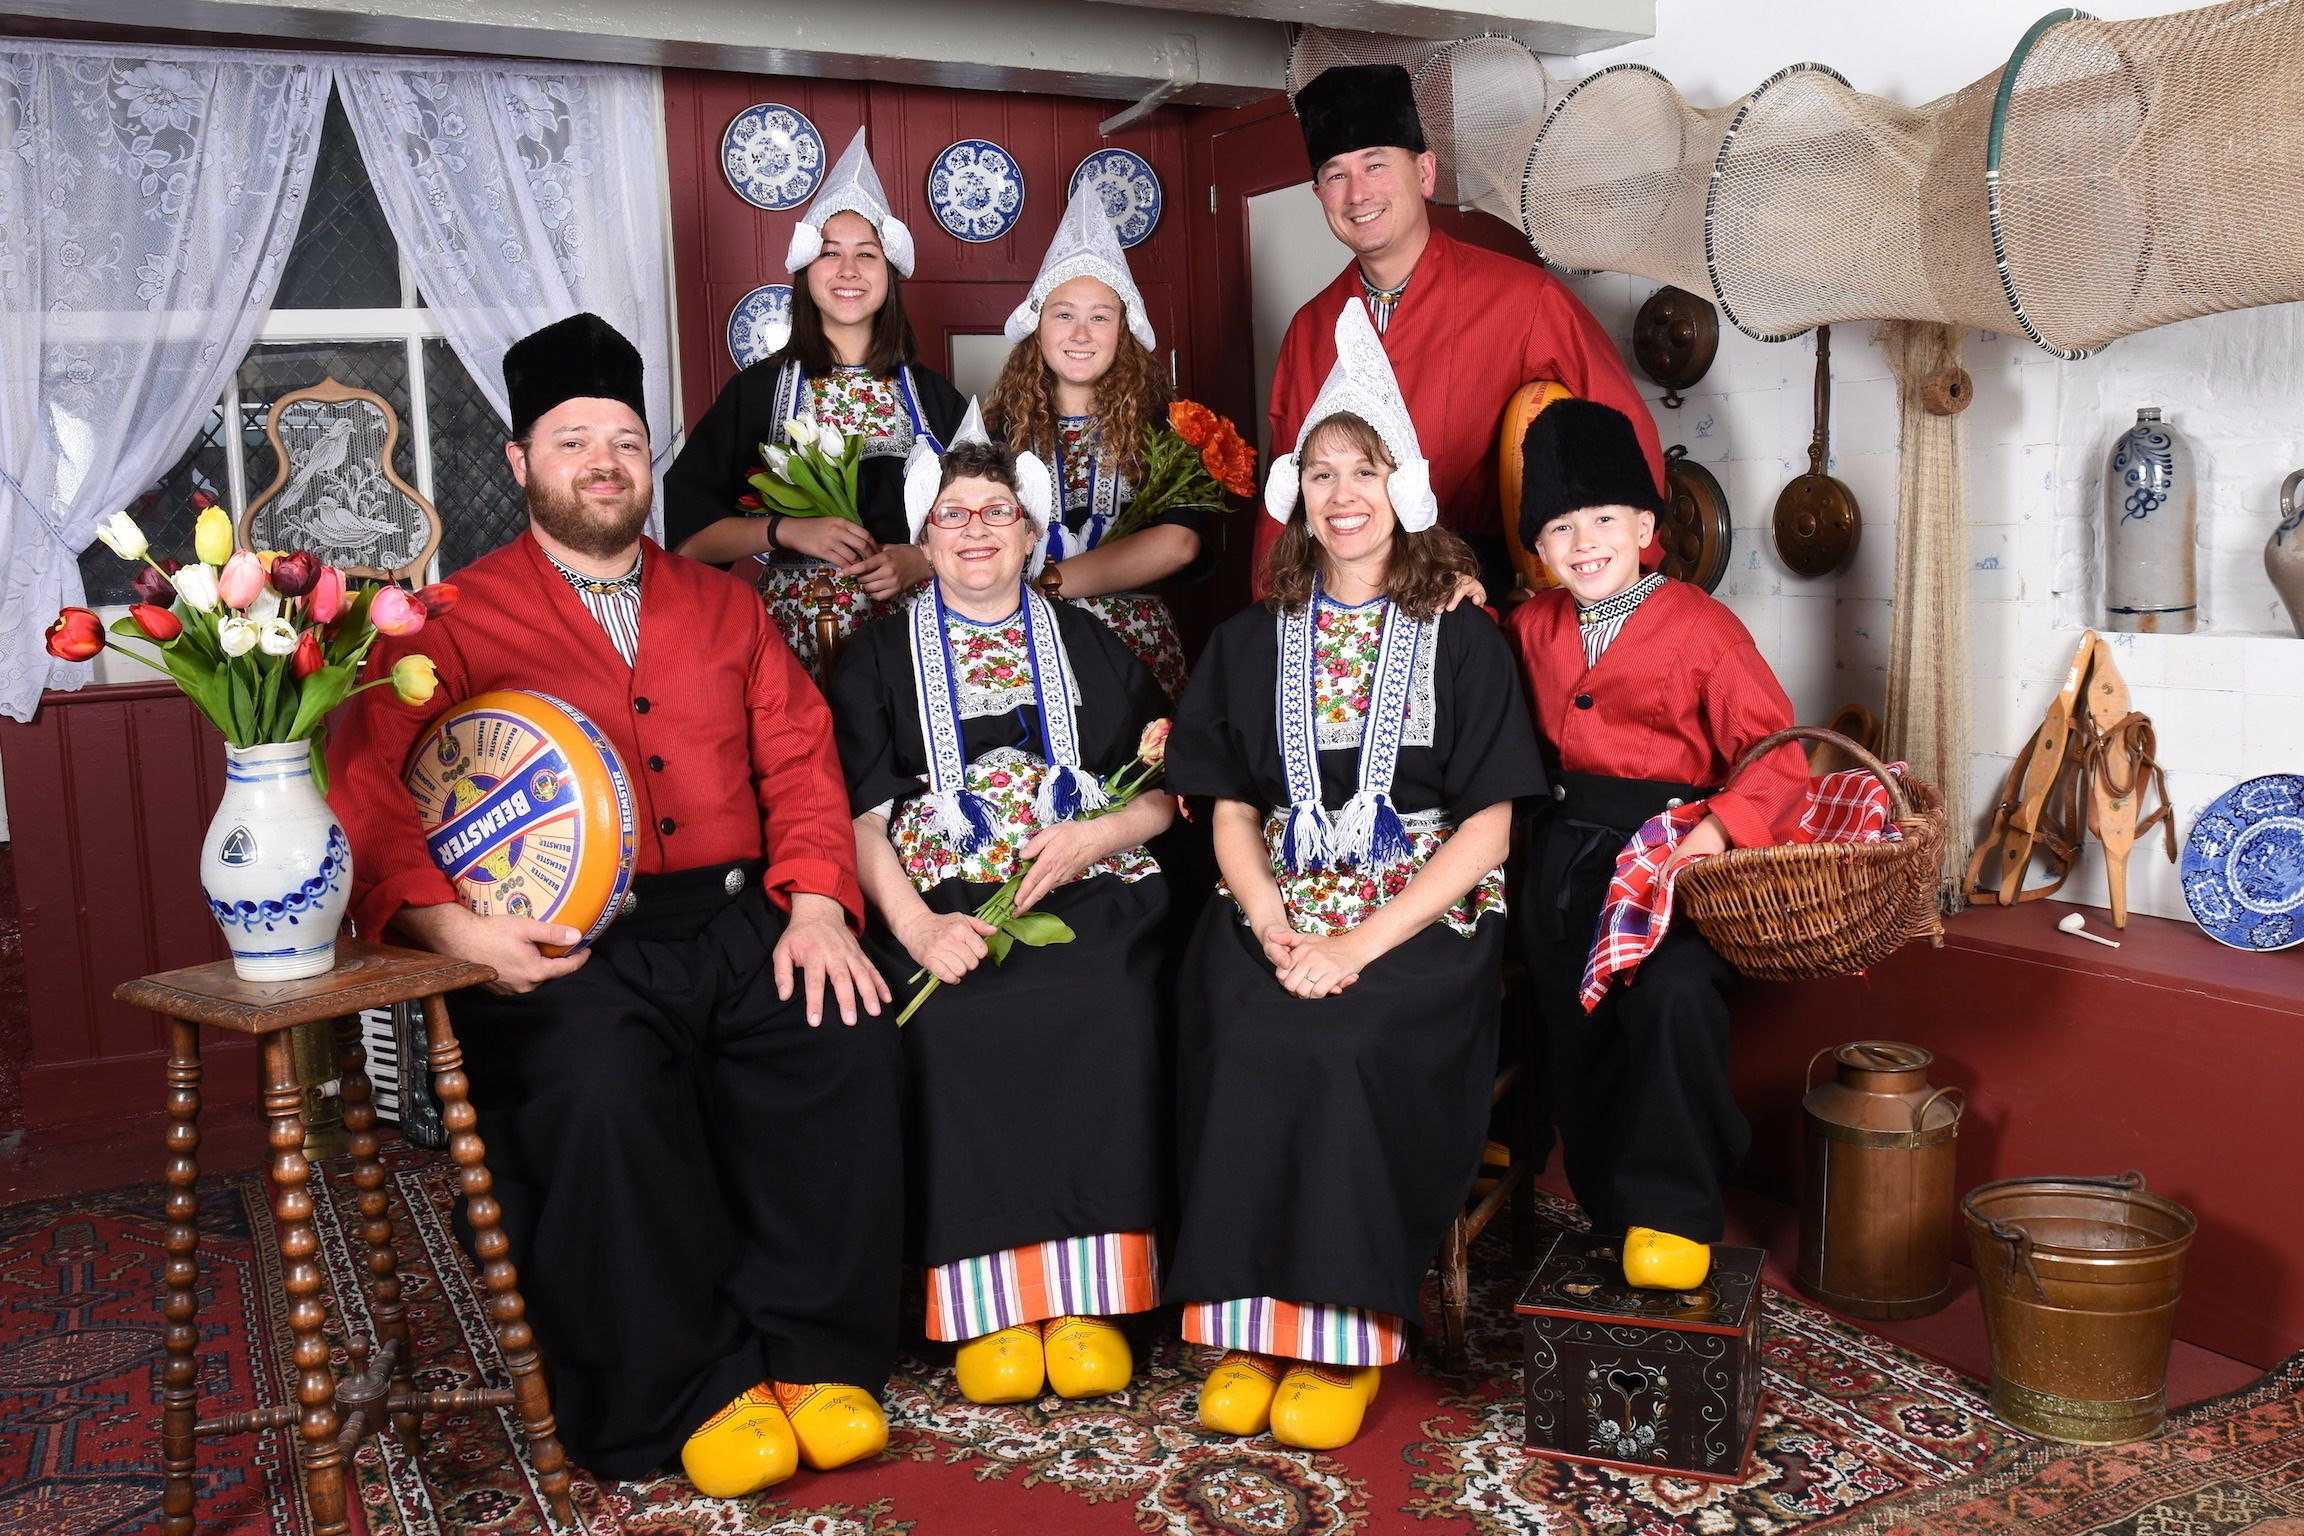 A group of tourists dressed in traditional clothing at the Dutch Costume Museum